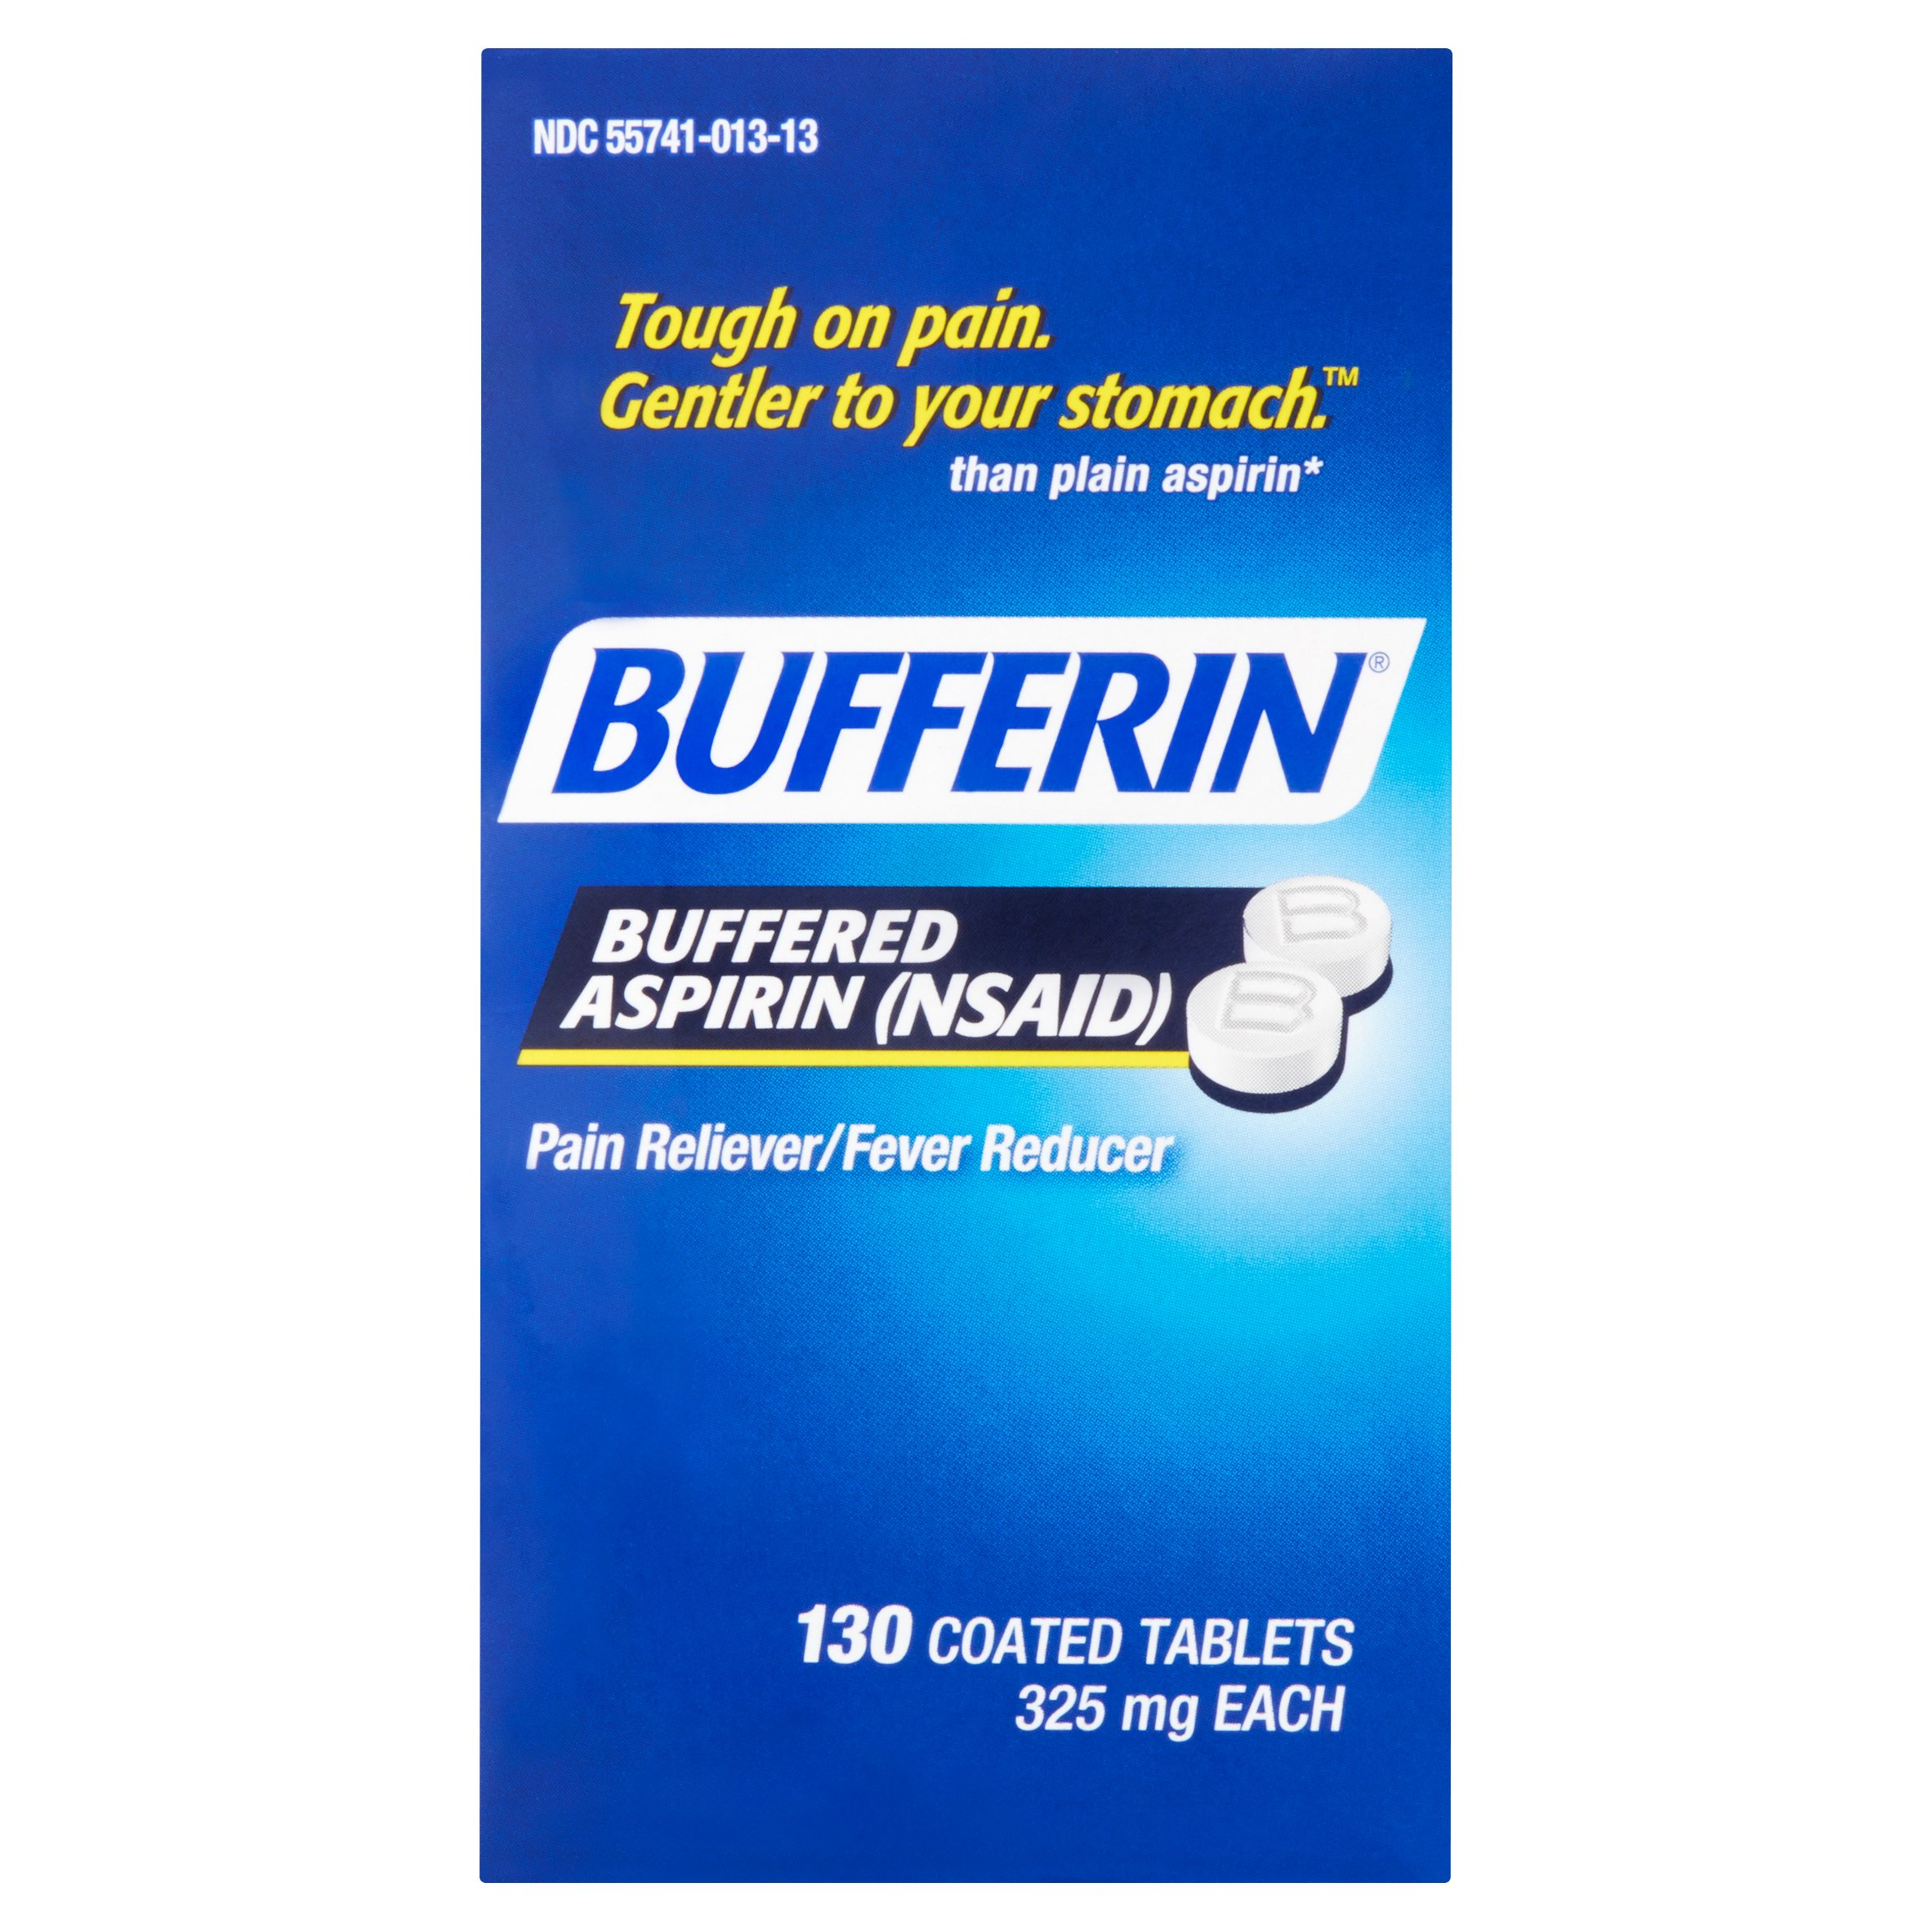 Bufferin Buffered Aspirin Pain Reliever/Fever Reducer Coated Tablets, 325mg, 130 count